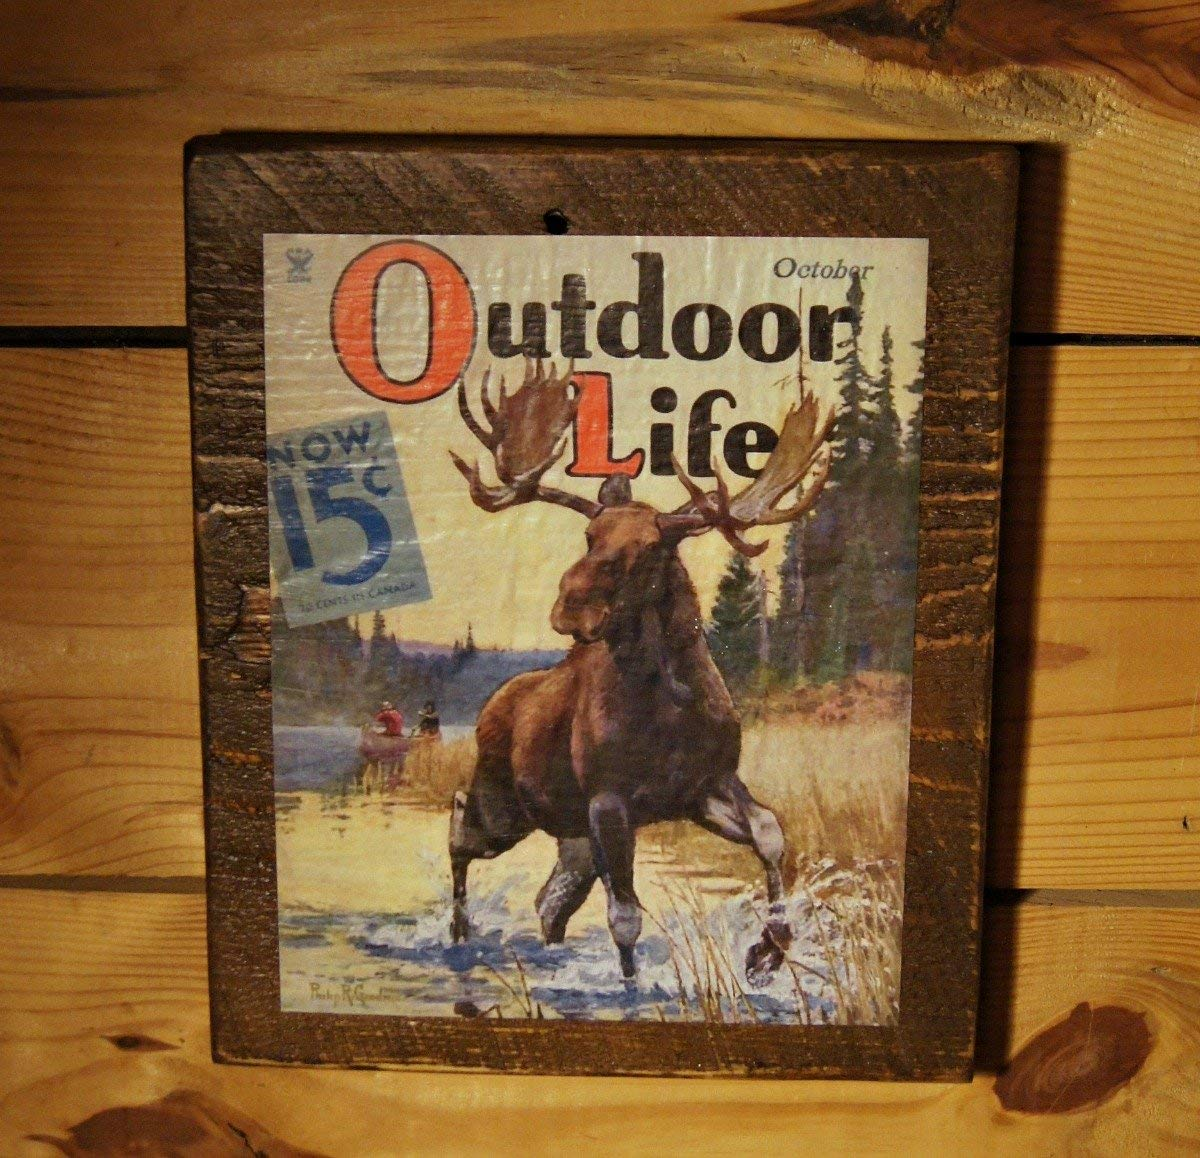 Outdoor Life Vintage Magazine Cover Print on Reclaimed Wood - Moose